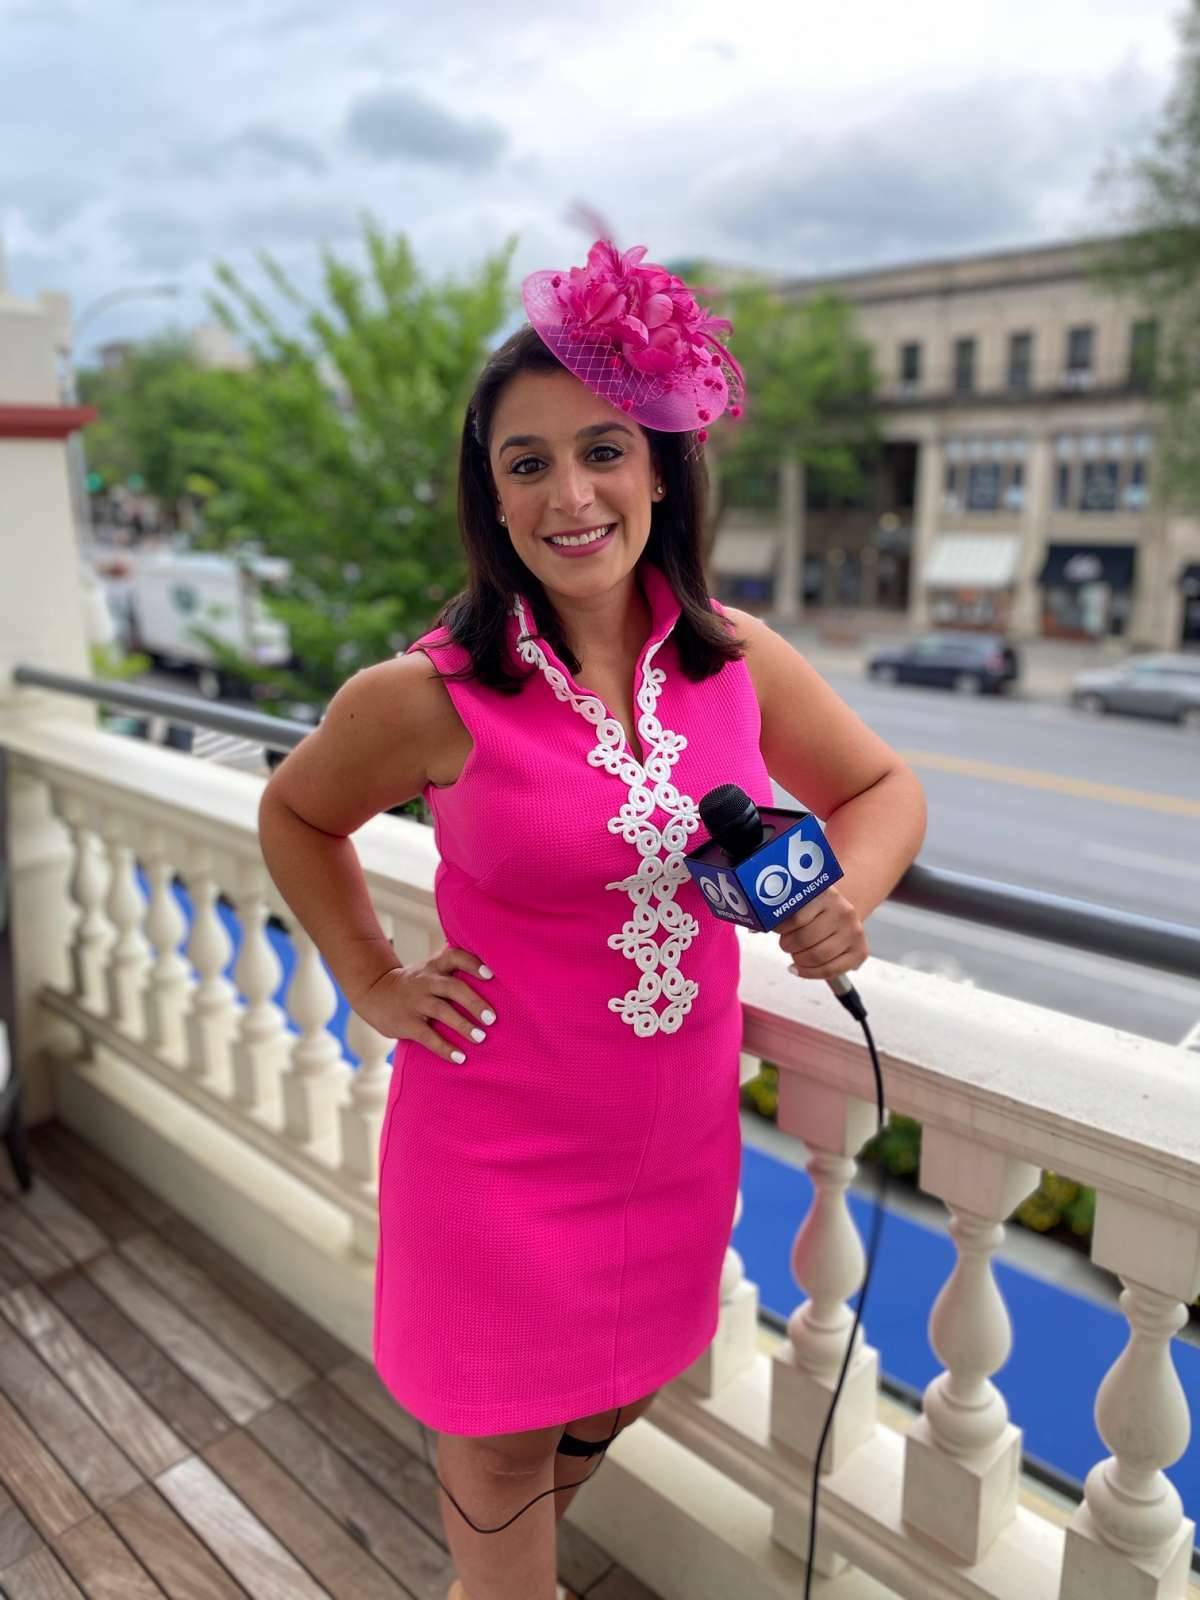 Leanne DeRosa has been named weekend evening anchor at CBS6 Albany.